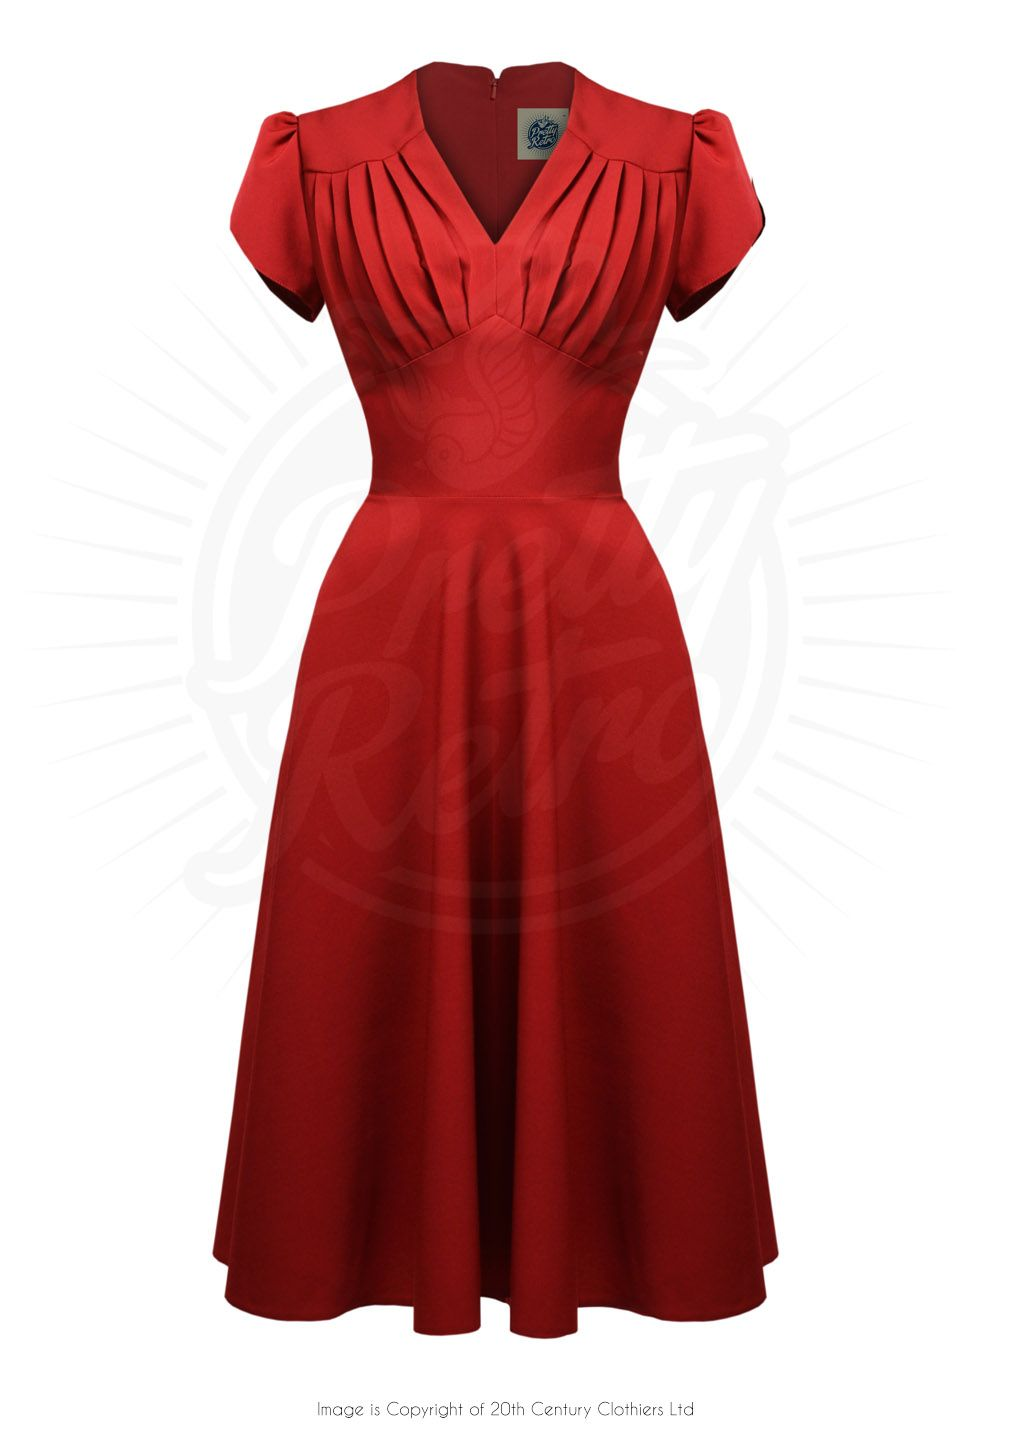 Red dress 50s style jukebox